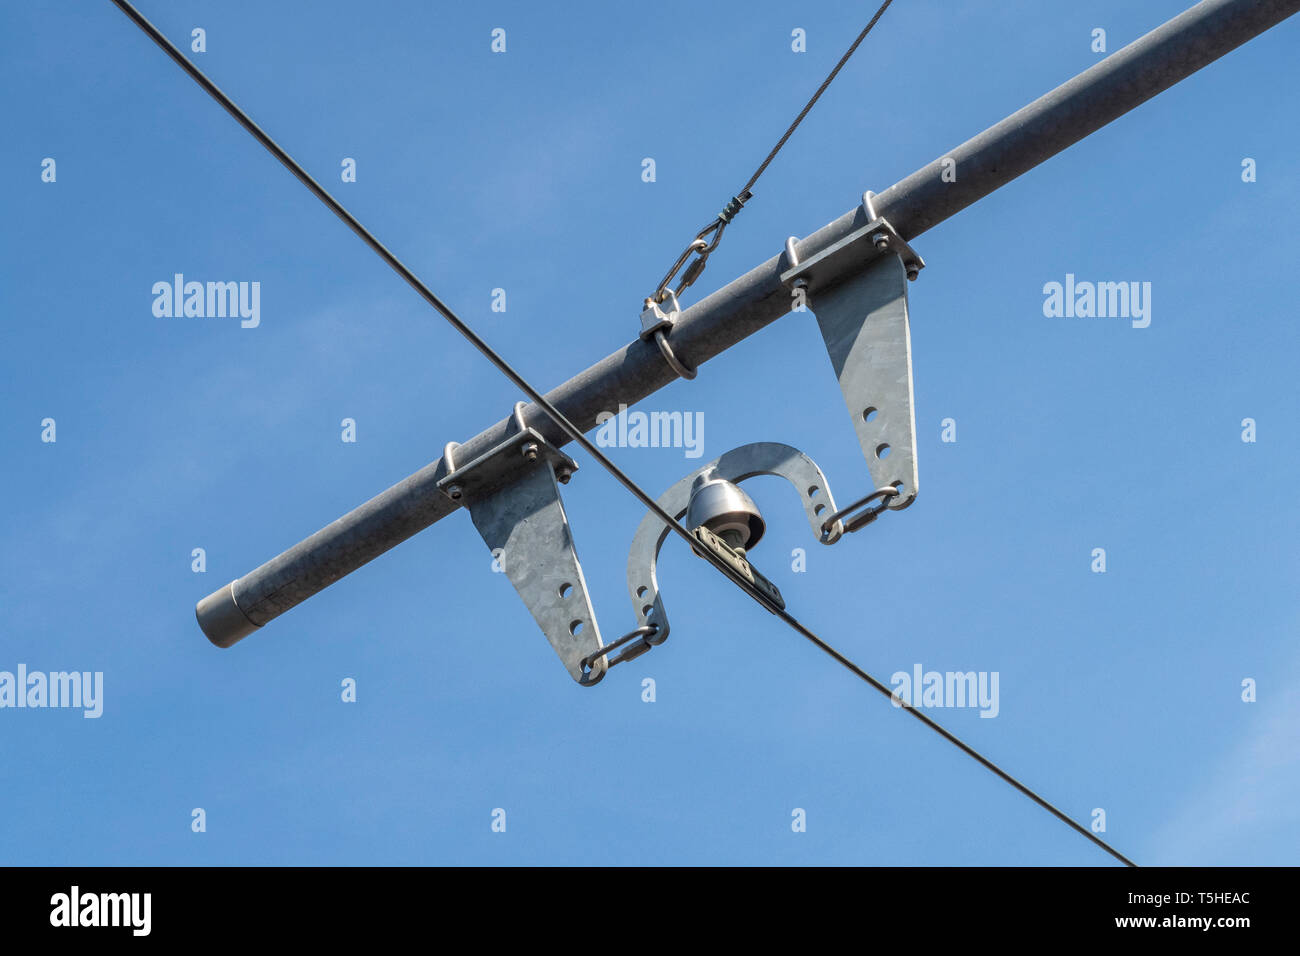 Electricity poles and lines at Seaton tramway, Devon, Uk, with a blue sky behind. Stock Photo